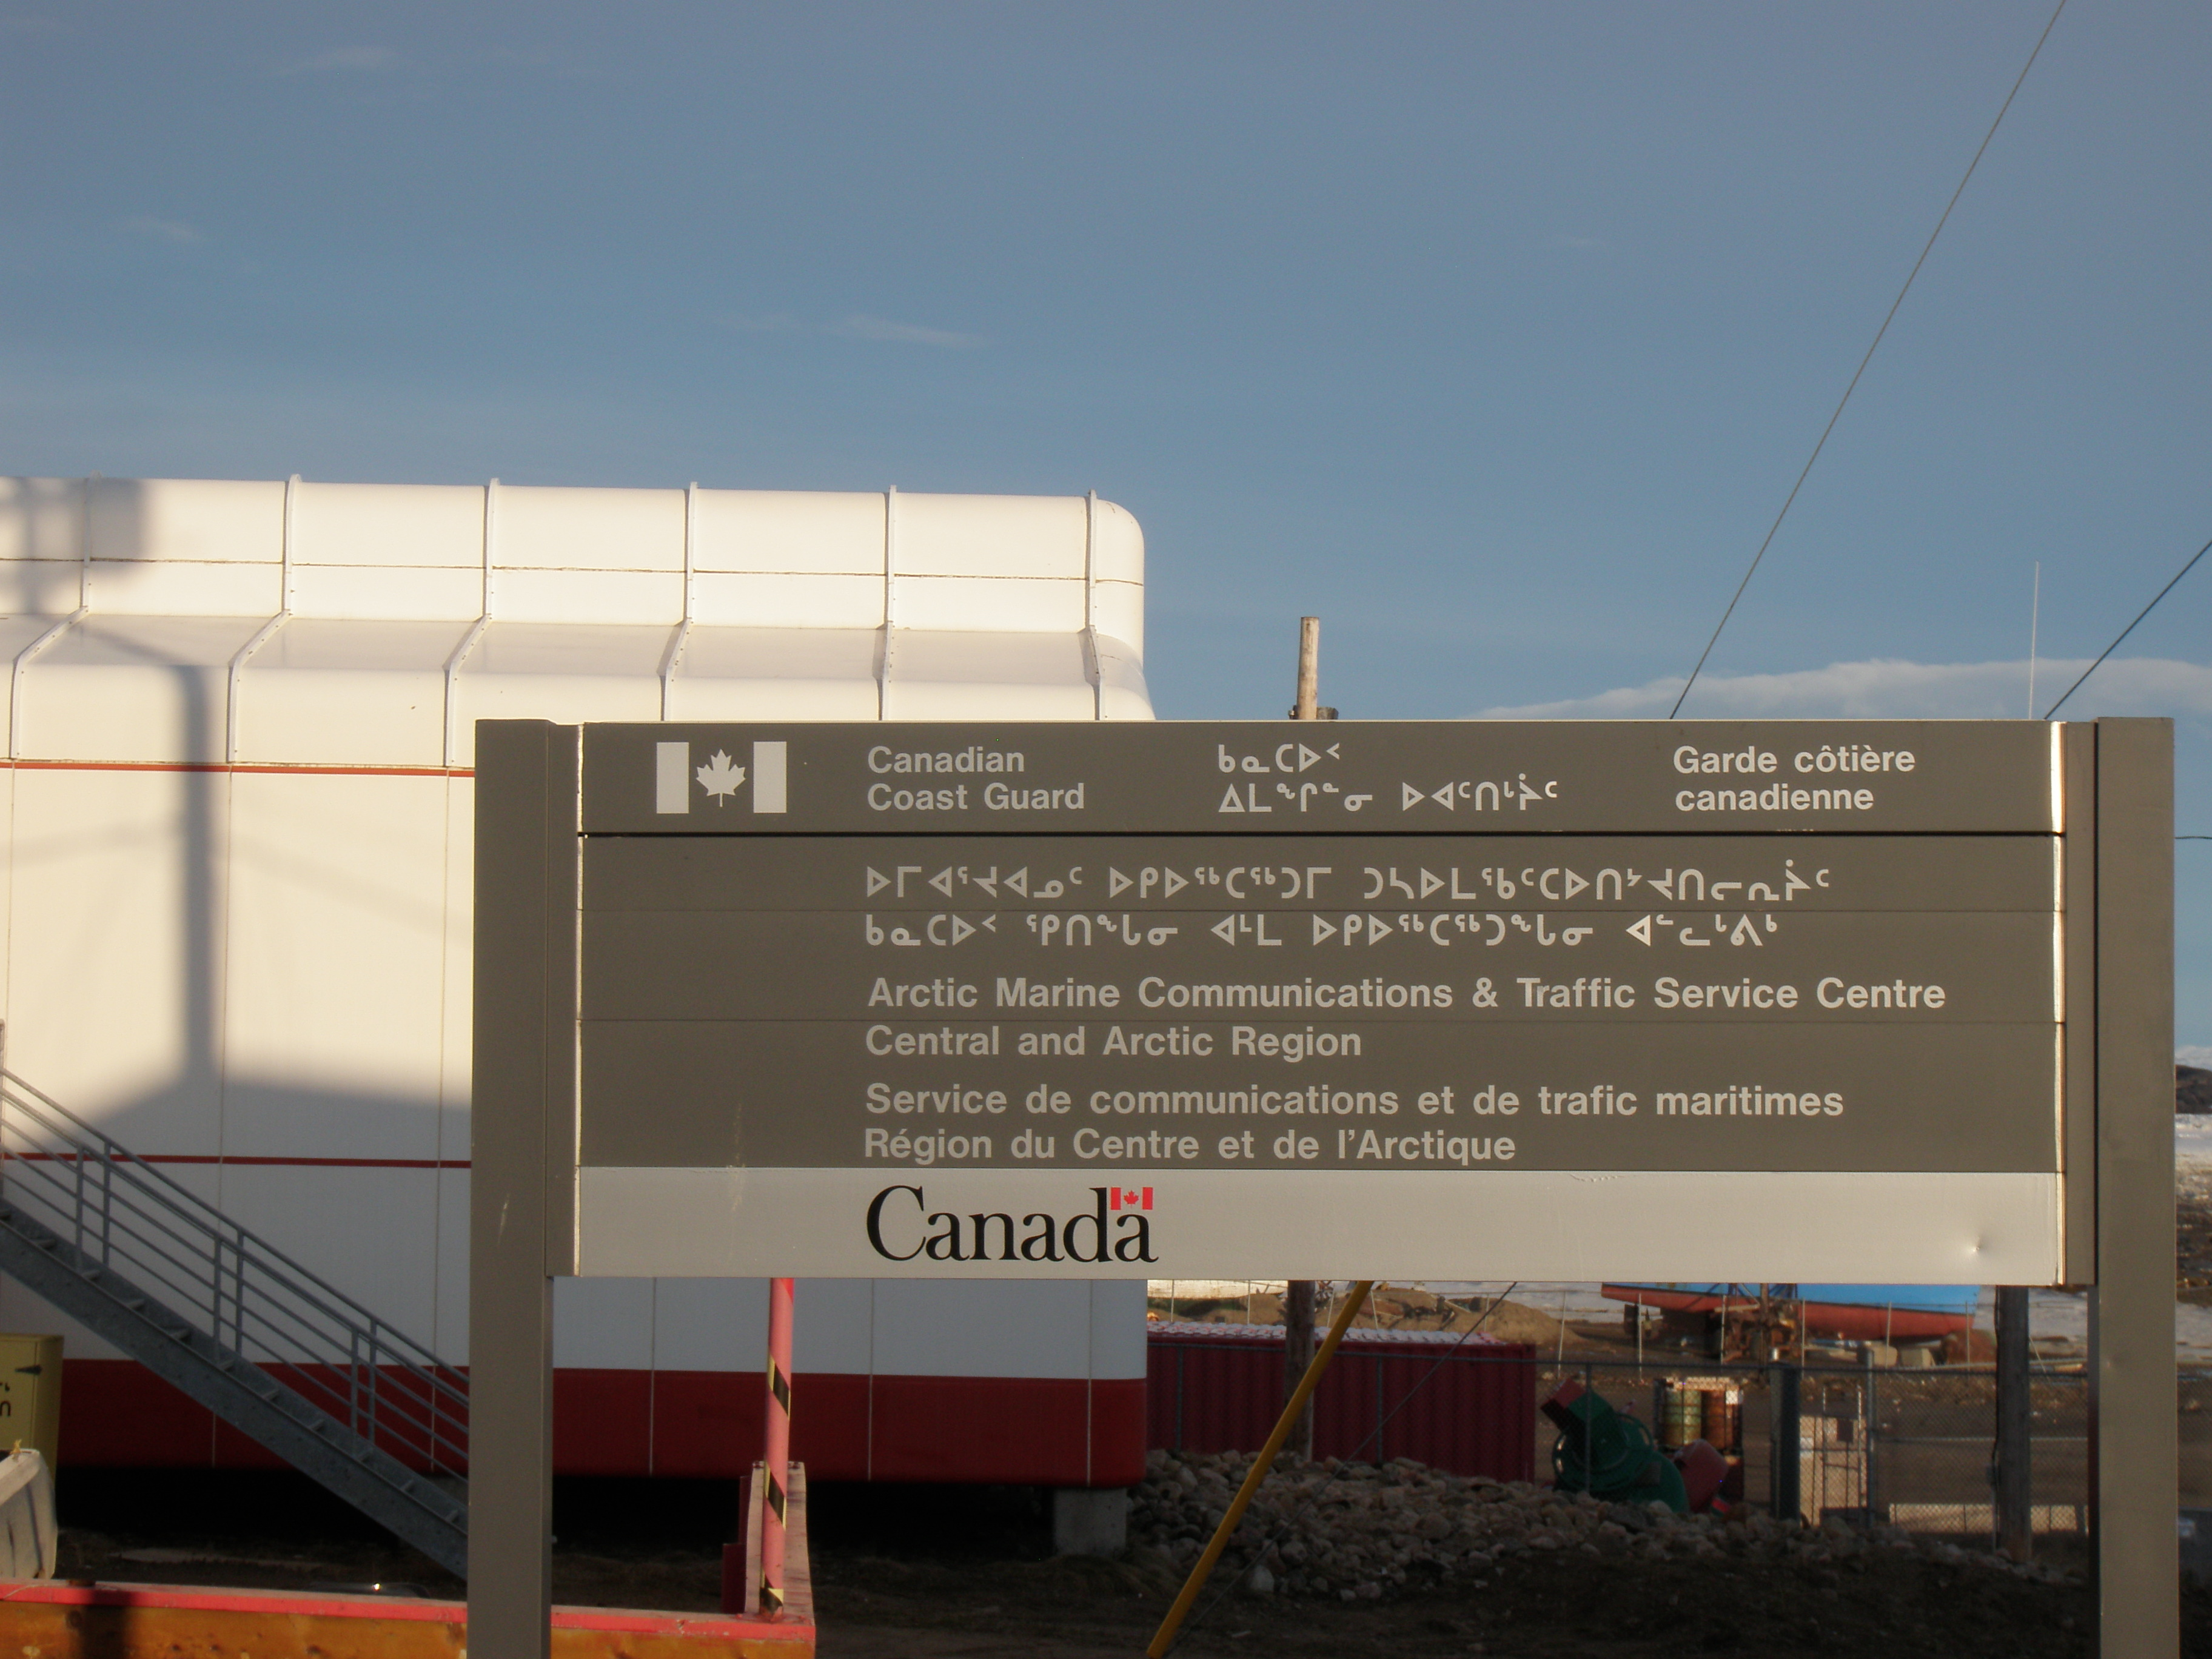 The Canadian Coast Guard Centre in Iqaluit July 2015. Academics recommended more satellite coverage for the Arctic to improve Canada's surveillance capabilities at a Nov 24 standing committee meeting in Ottawa. (Brian Pehora)